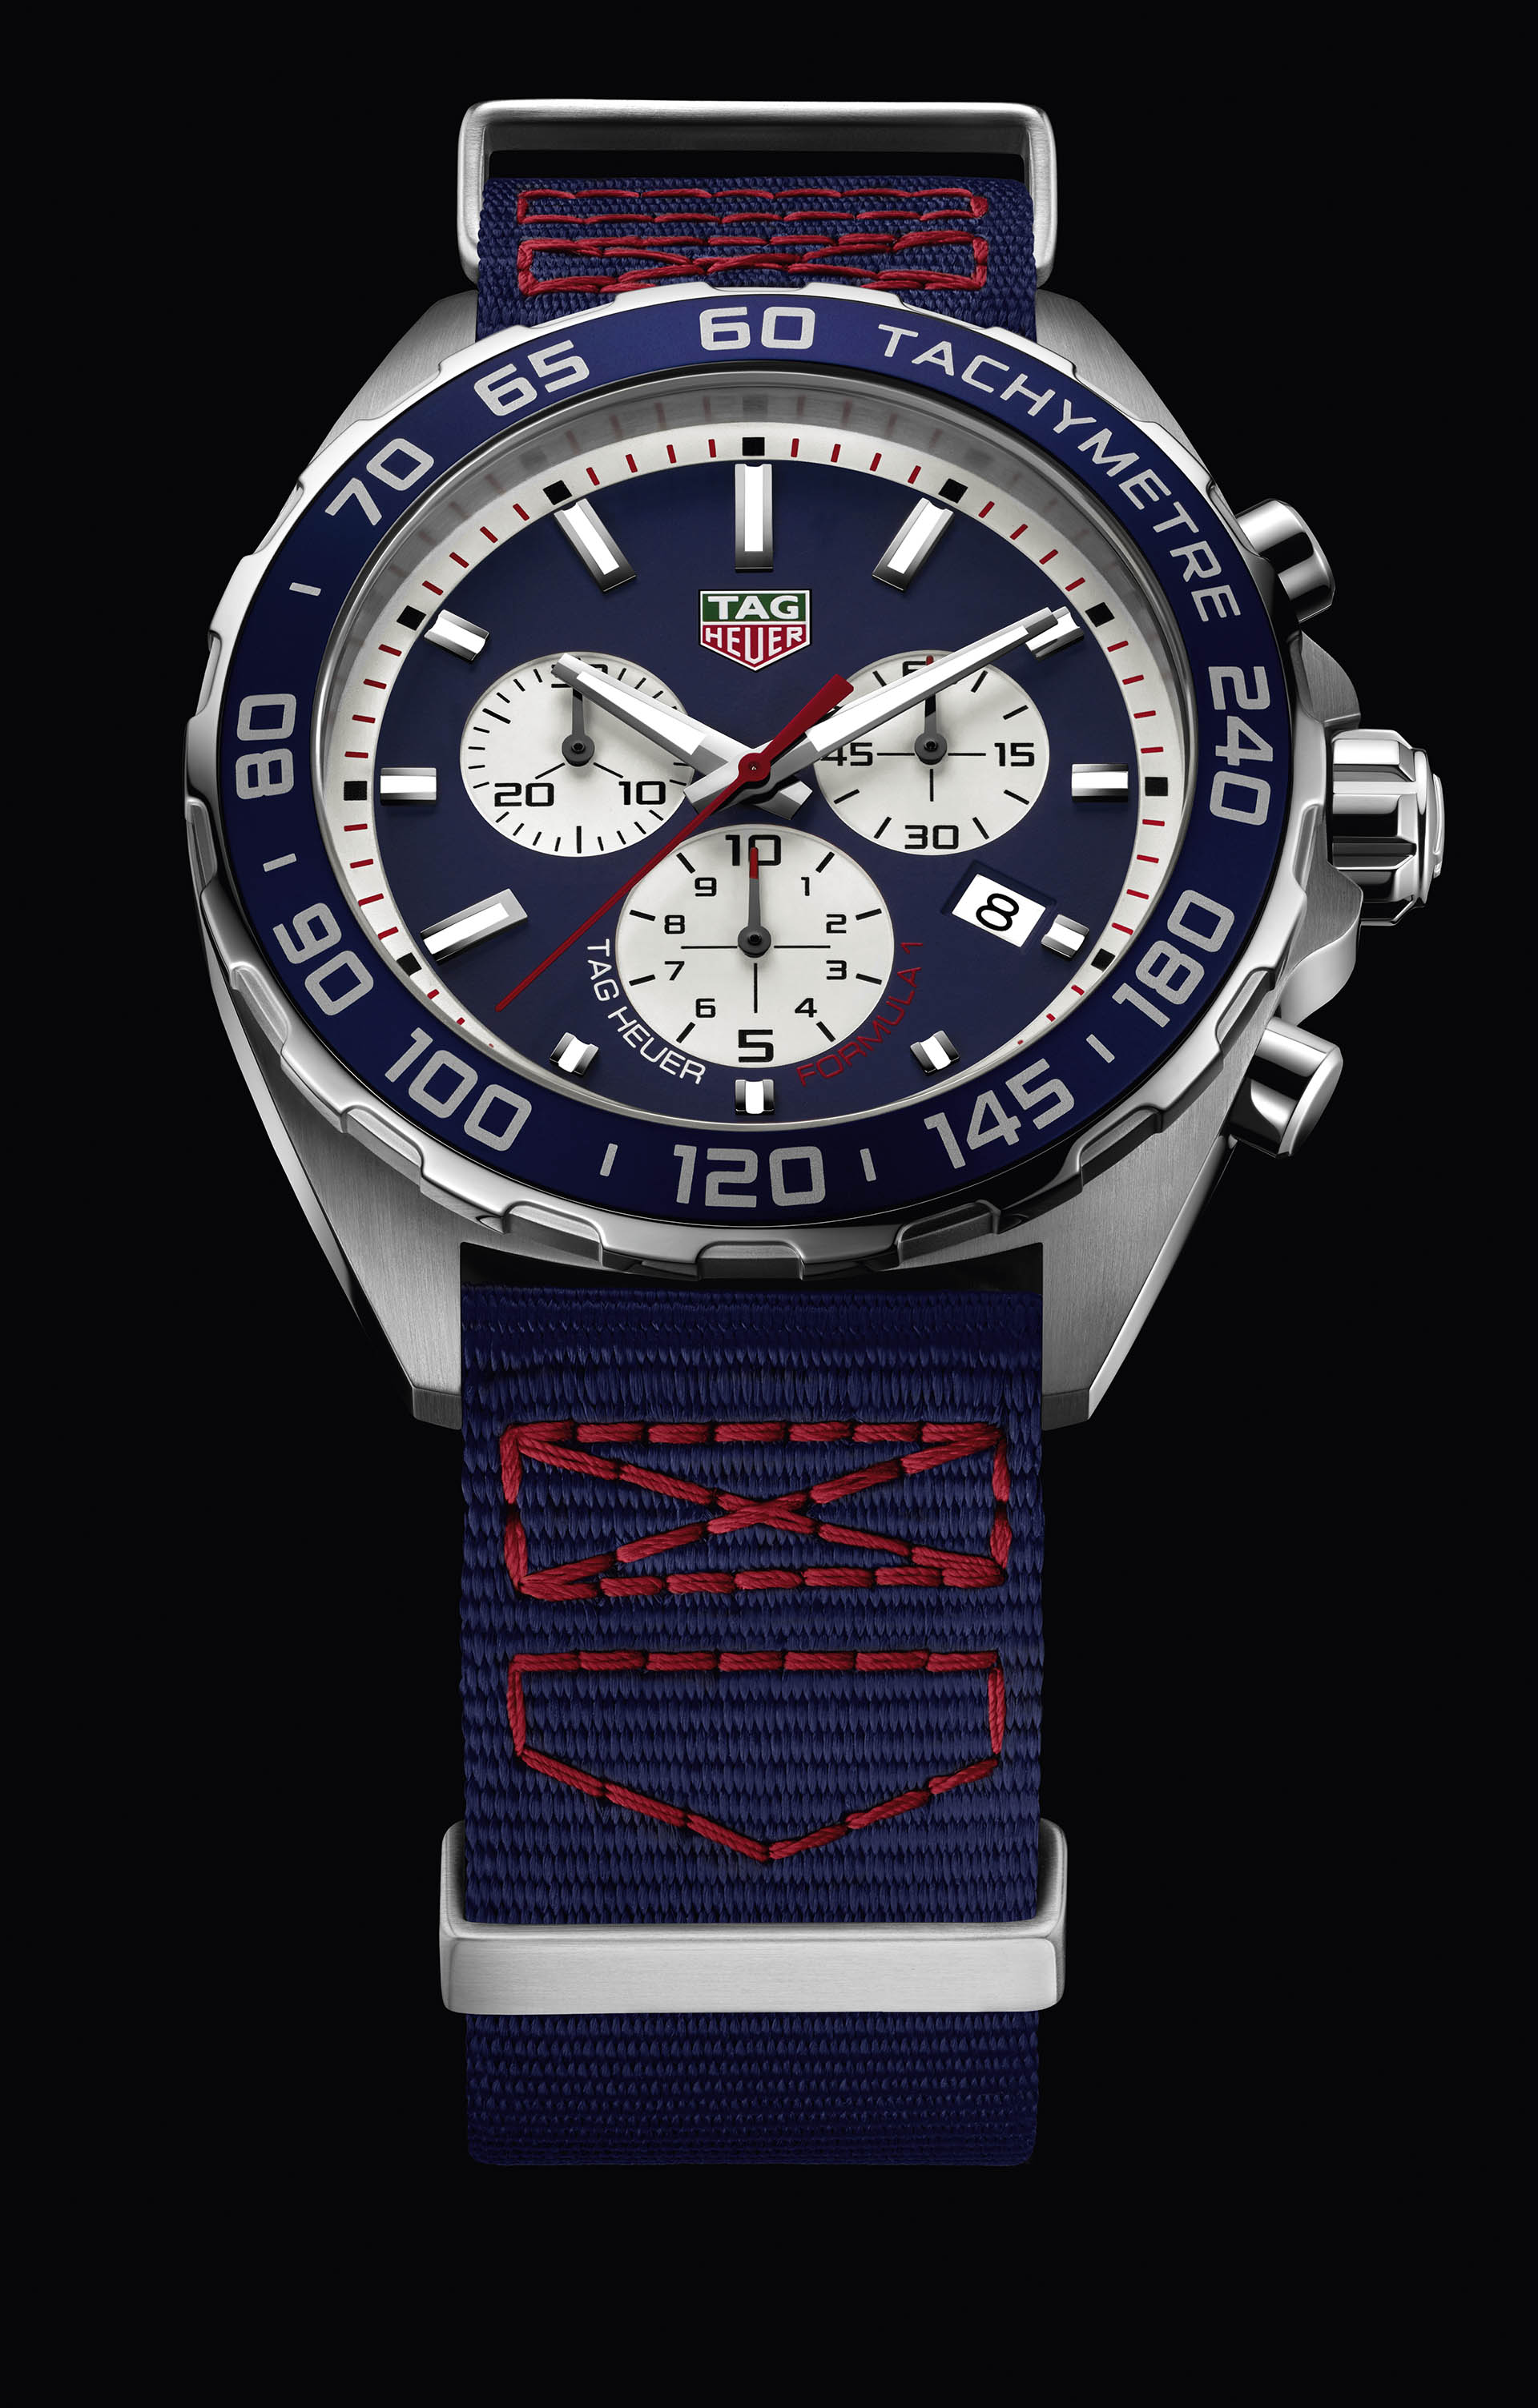 TAG Heuer Formula 1 Special Edition Aston Martin Red Bull Racing